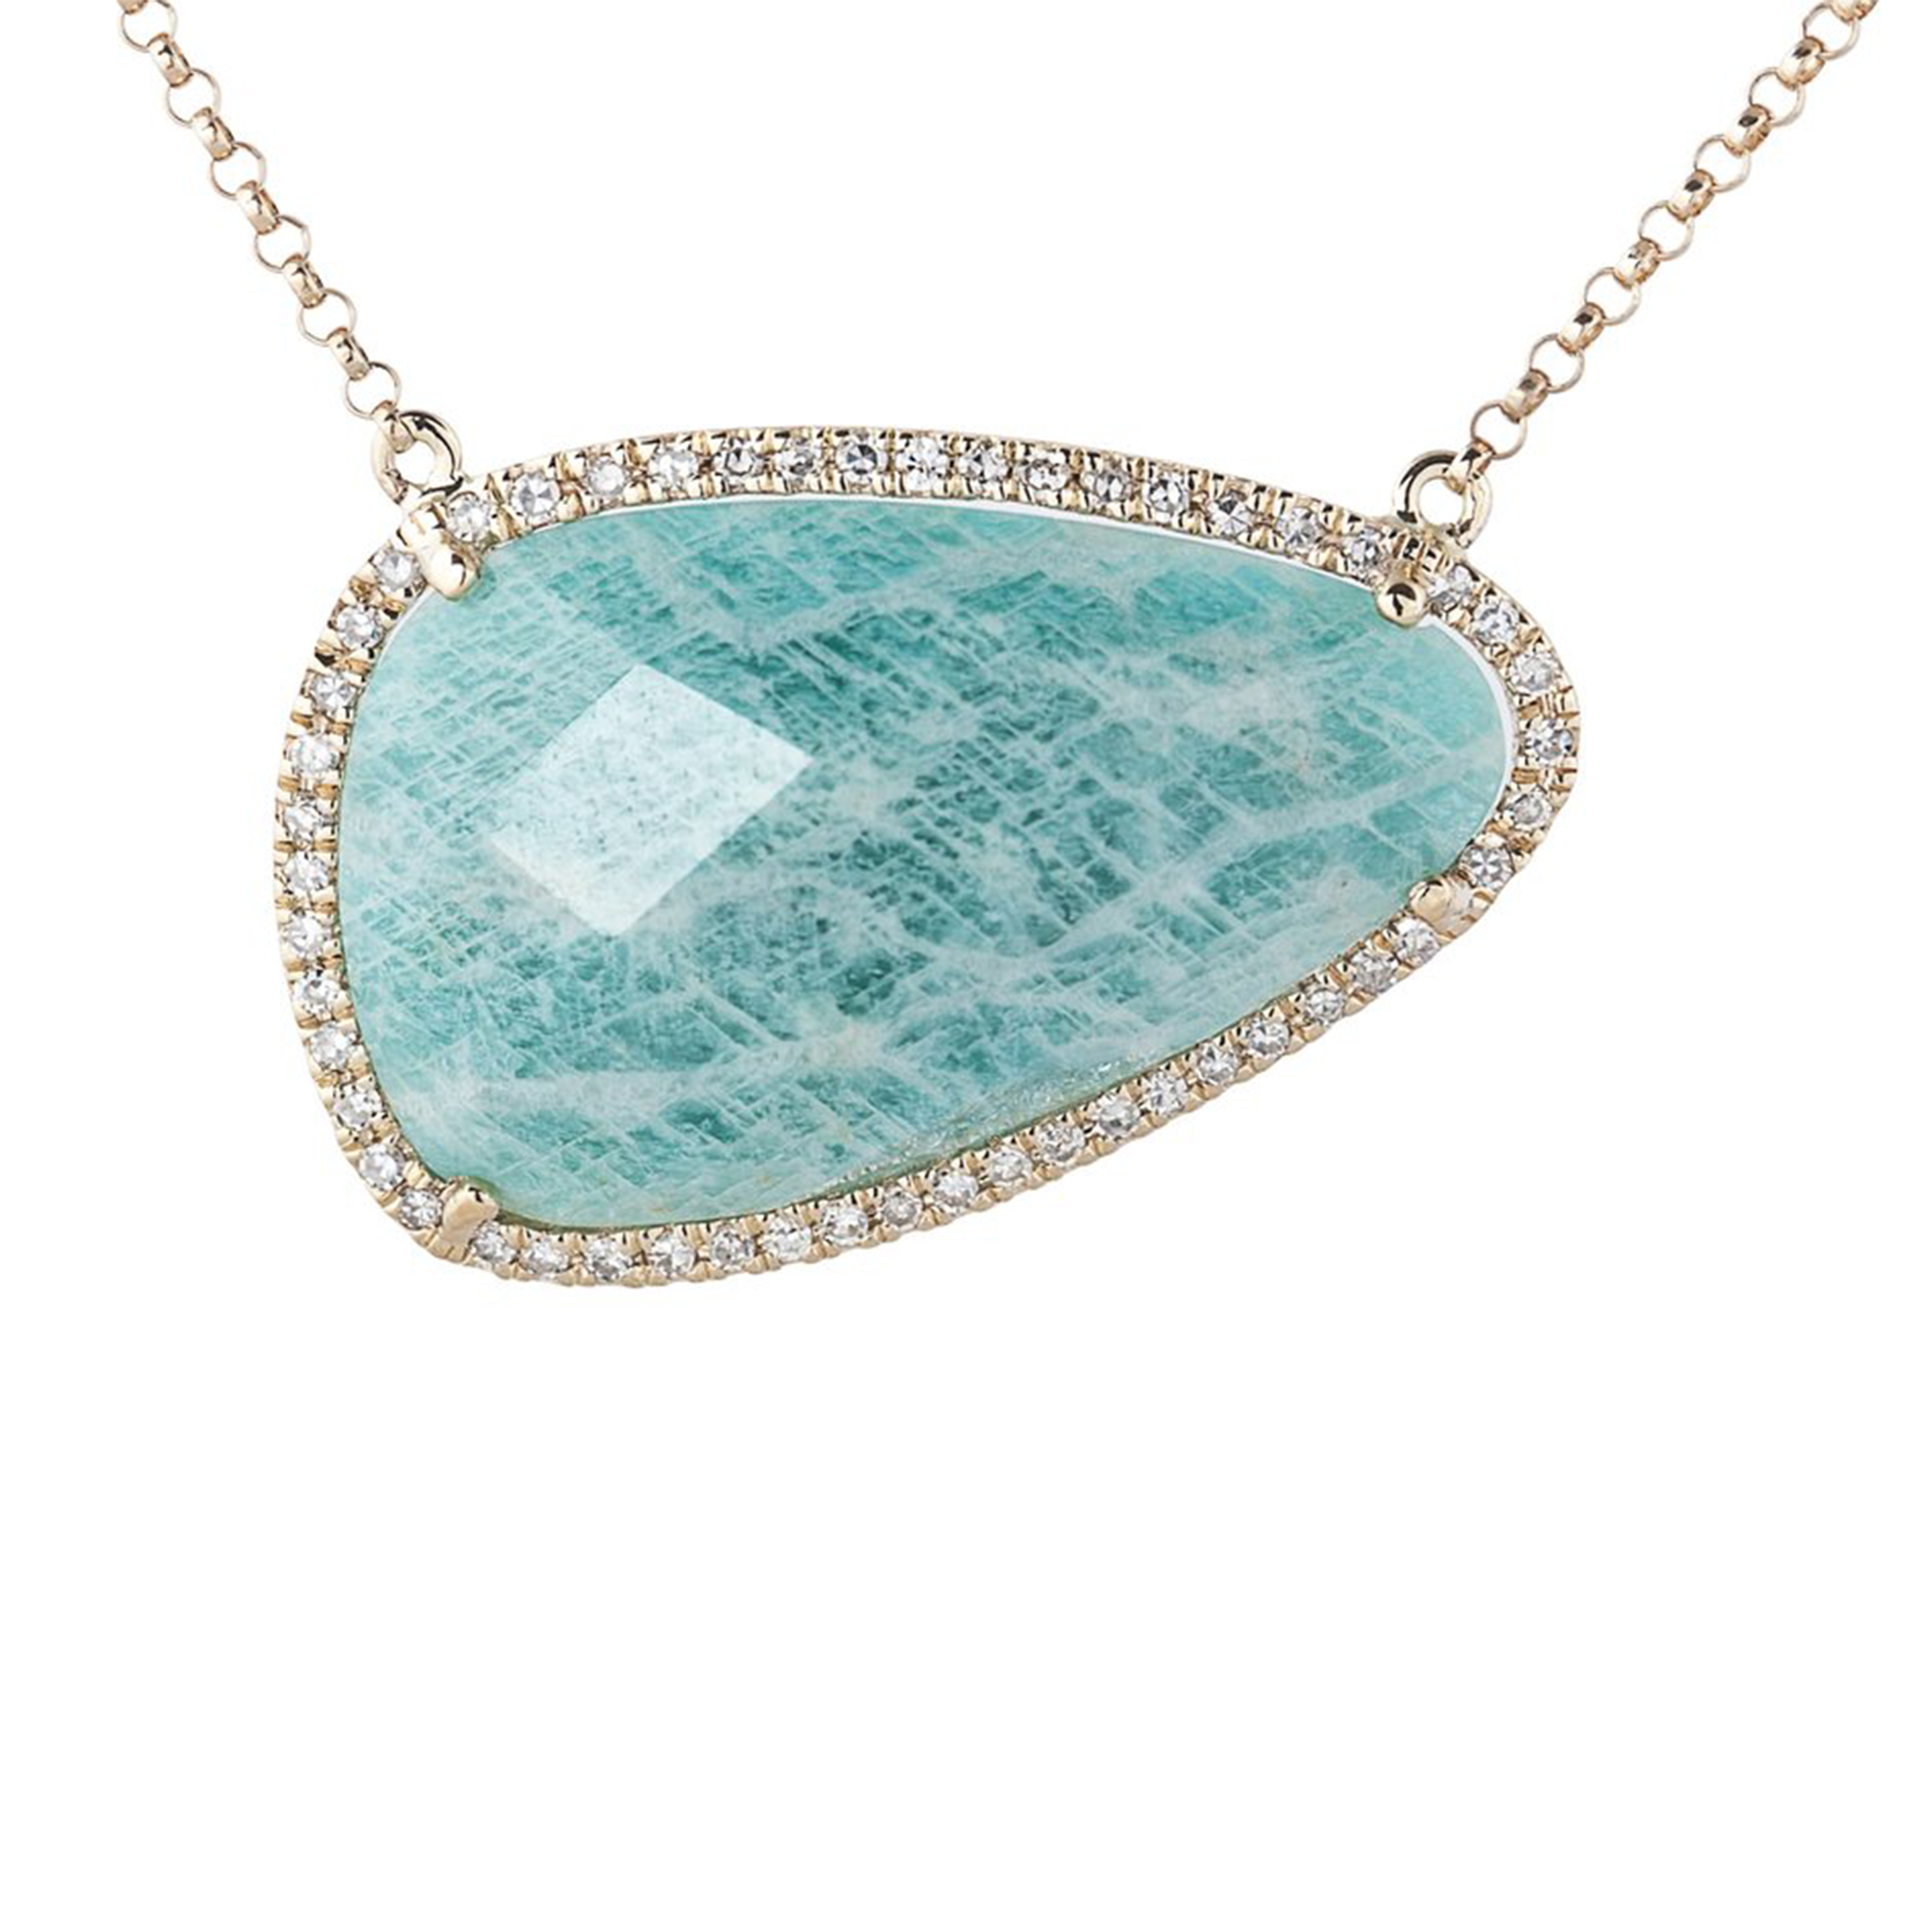 fullscreen amazonite lyst t gold view rose necklace jewelry pendant meira diamond